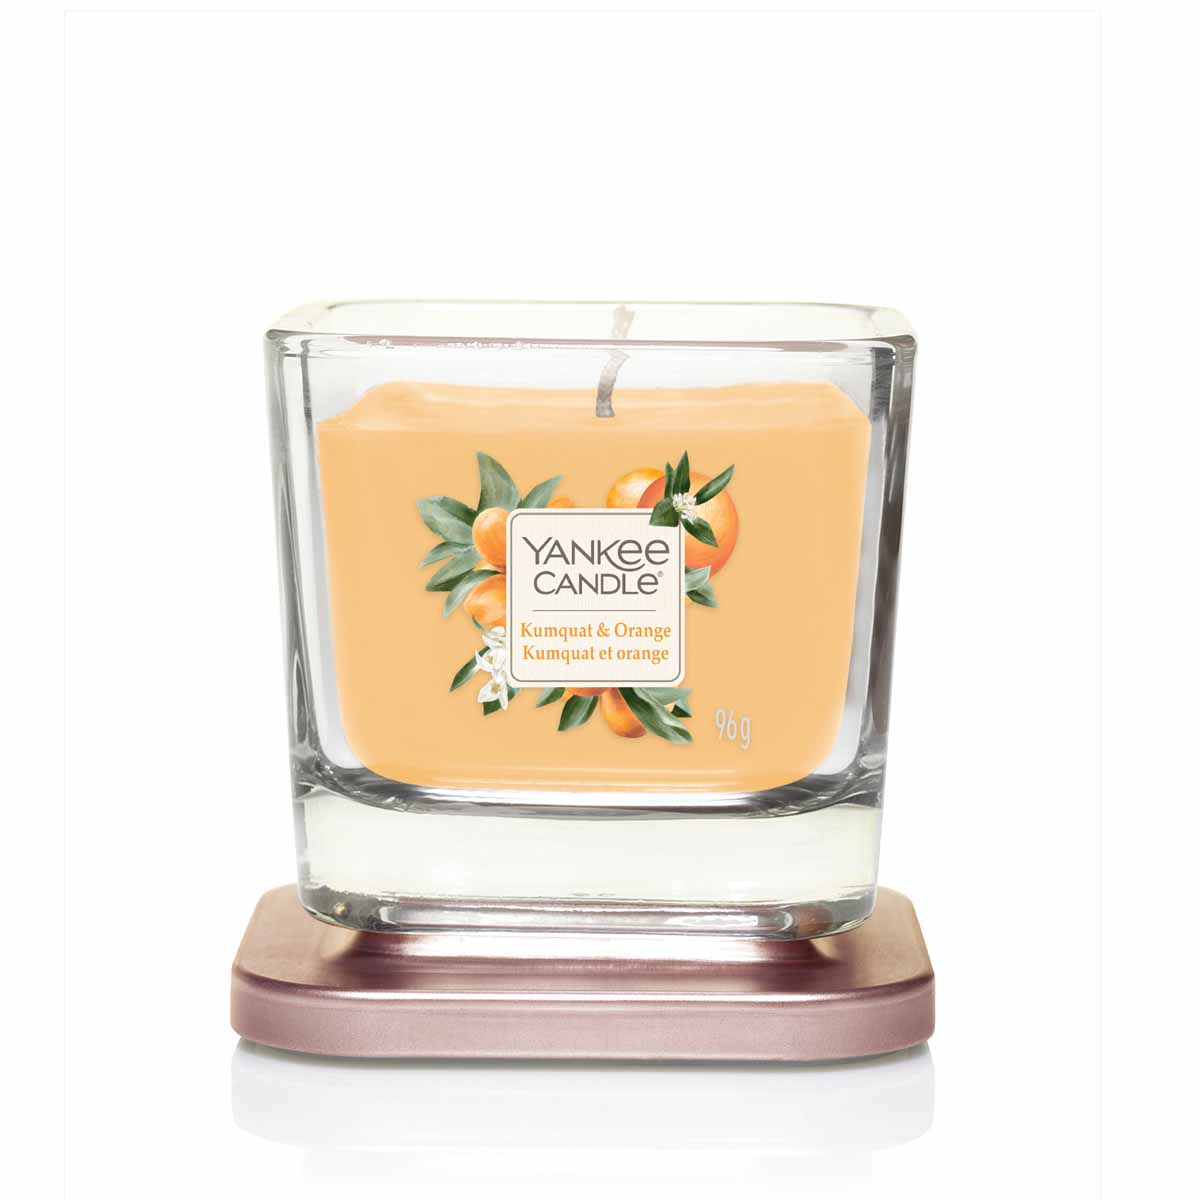 Yankee Candle Kumquat & Orange Square Vessel Piccola